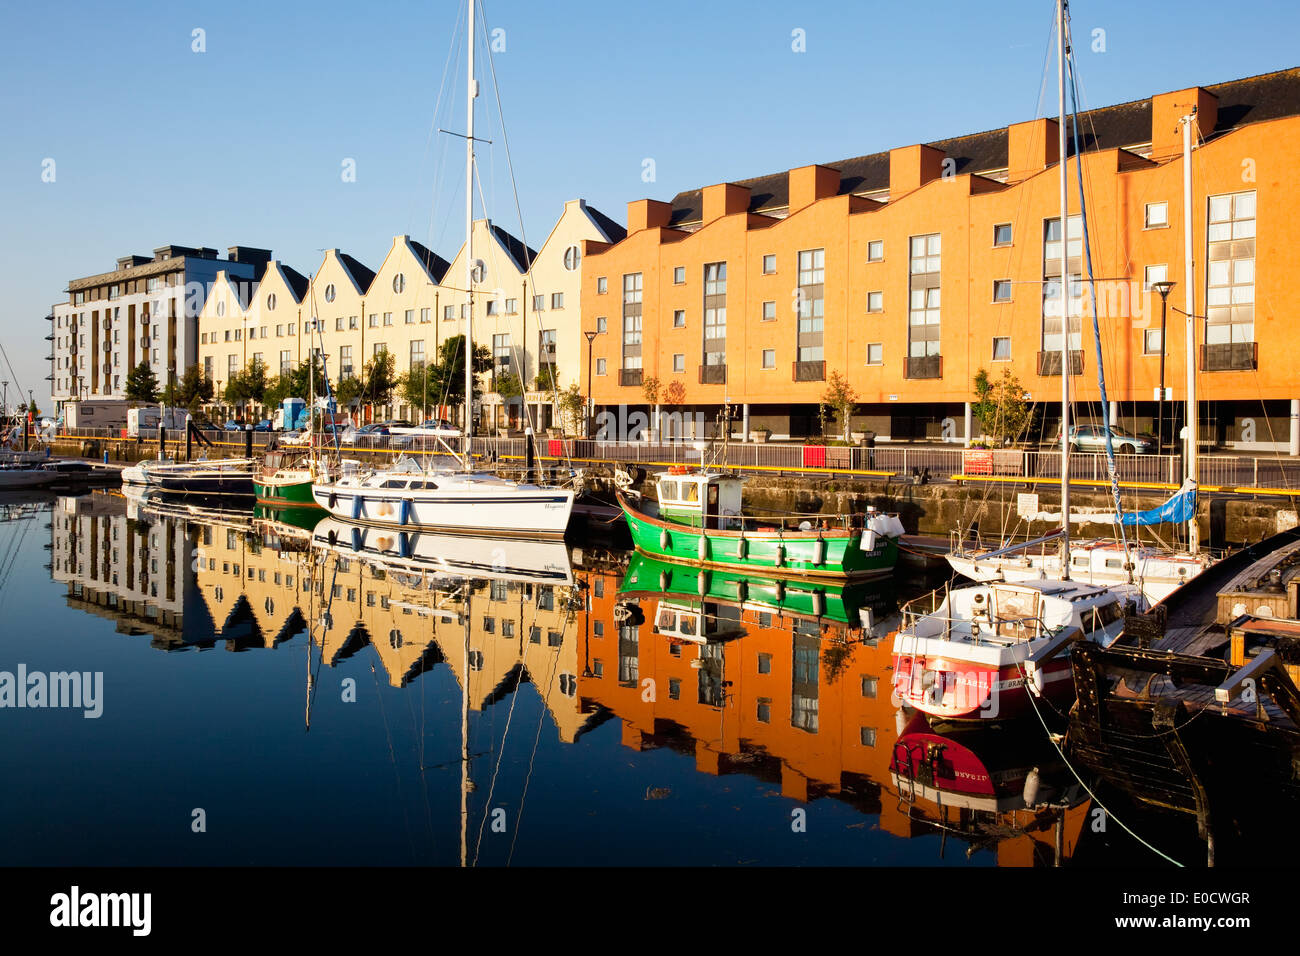 Buildings and boats reflected in tranquil water; Galway City, County Galway, Ireland - Stock Image